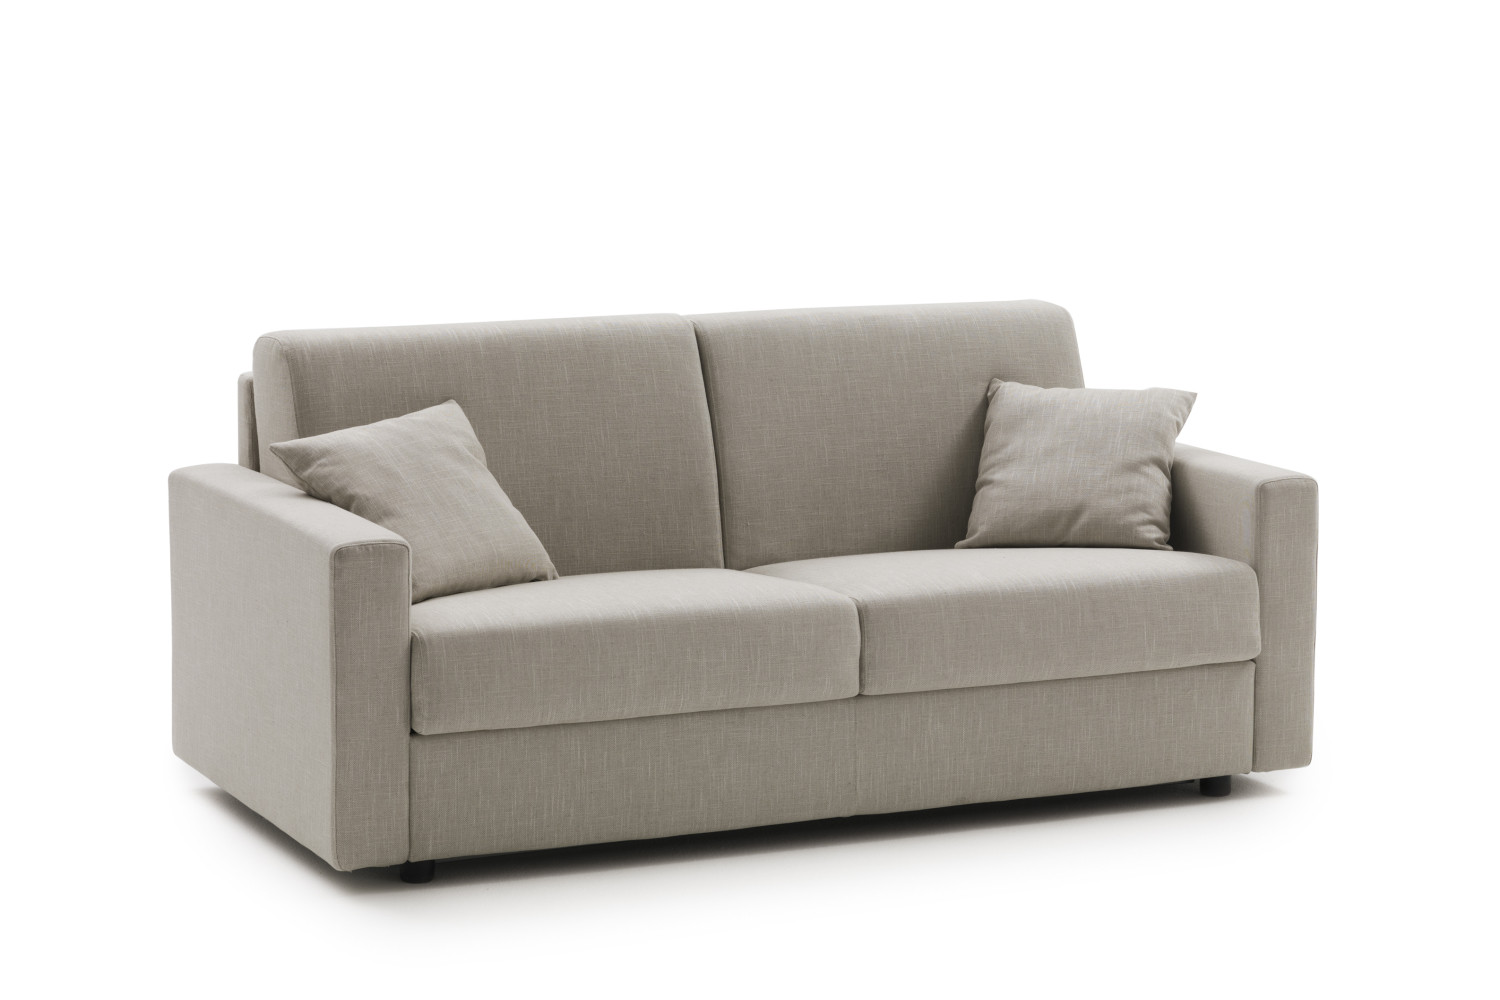 Lampo motion sofa bed with motorised opening system for Divano letto 2 metri